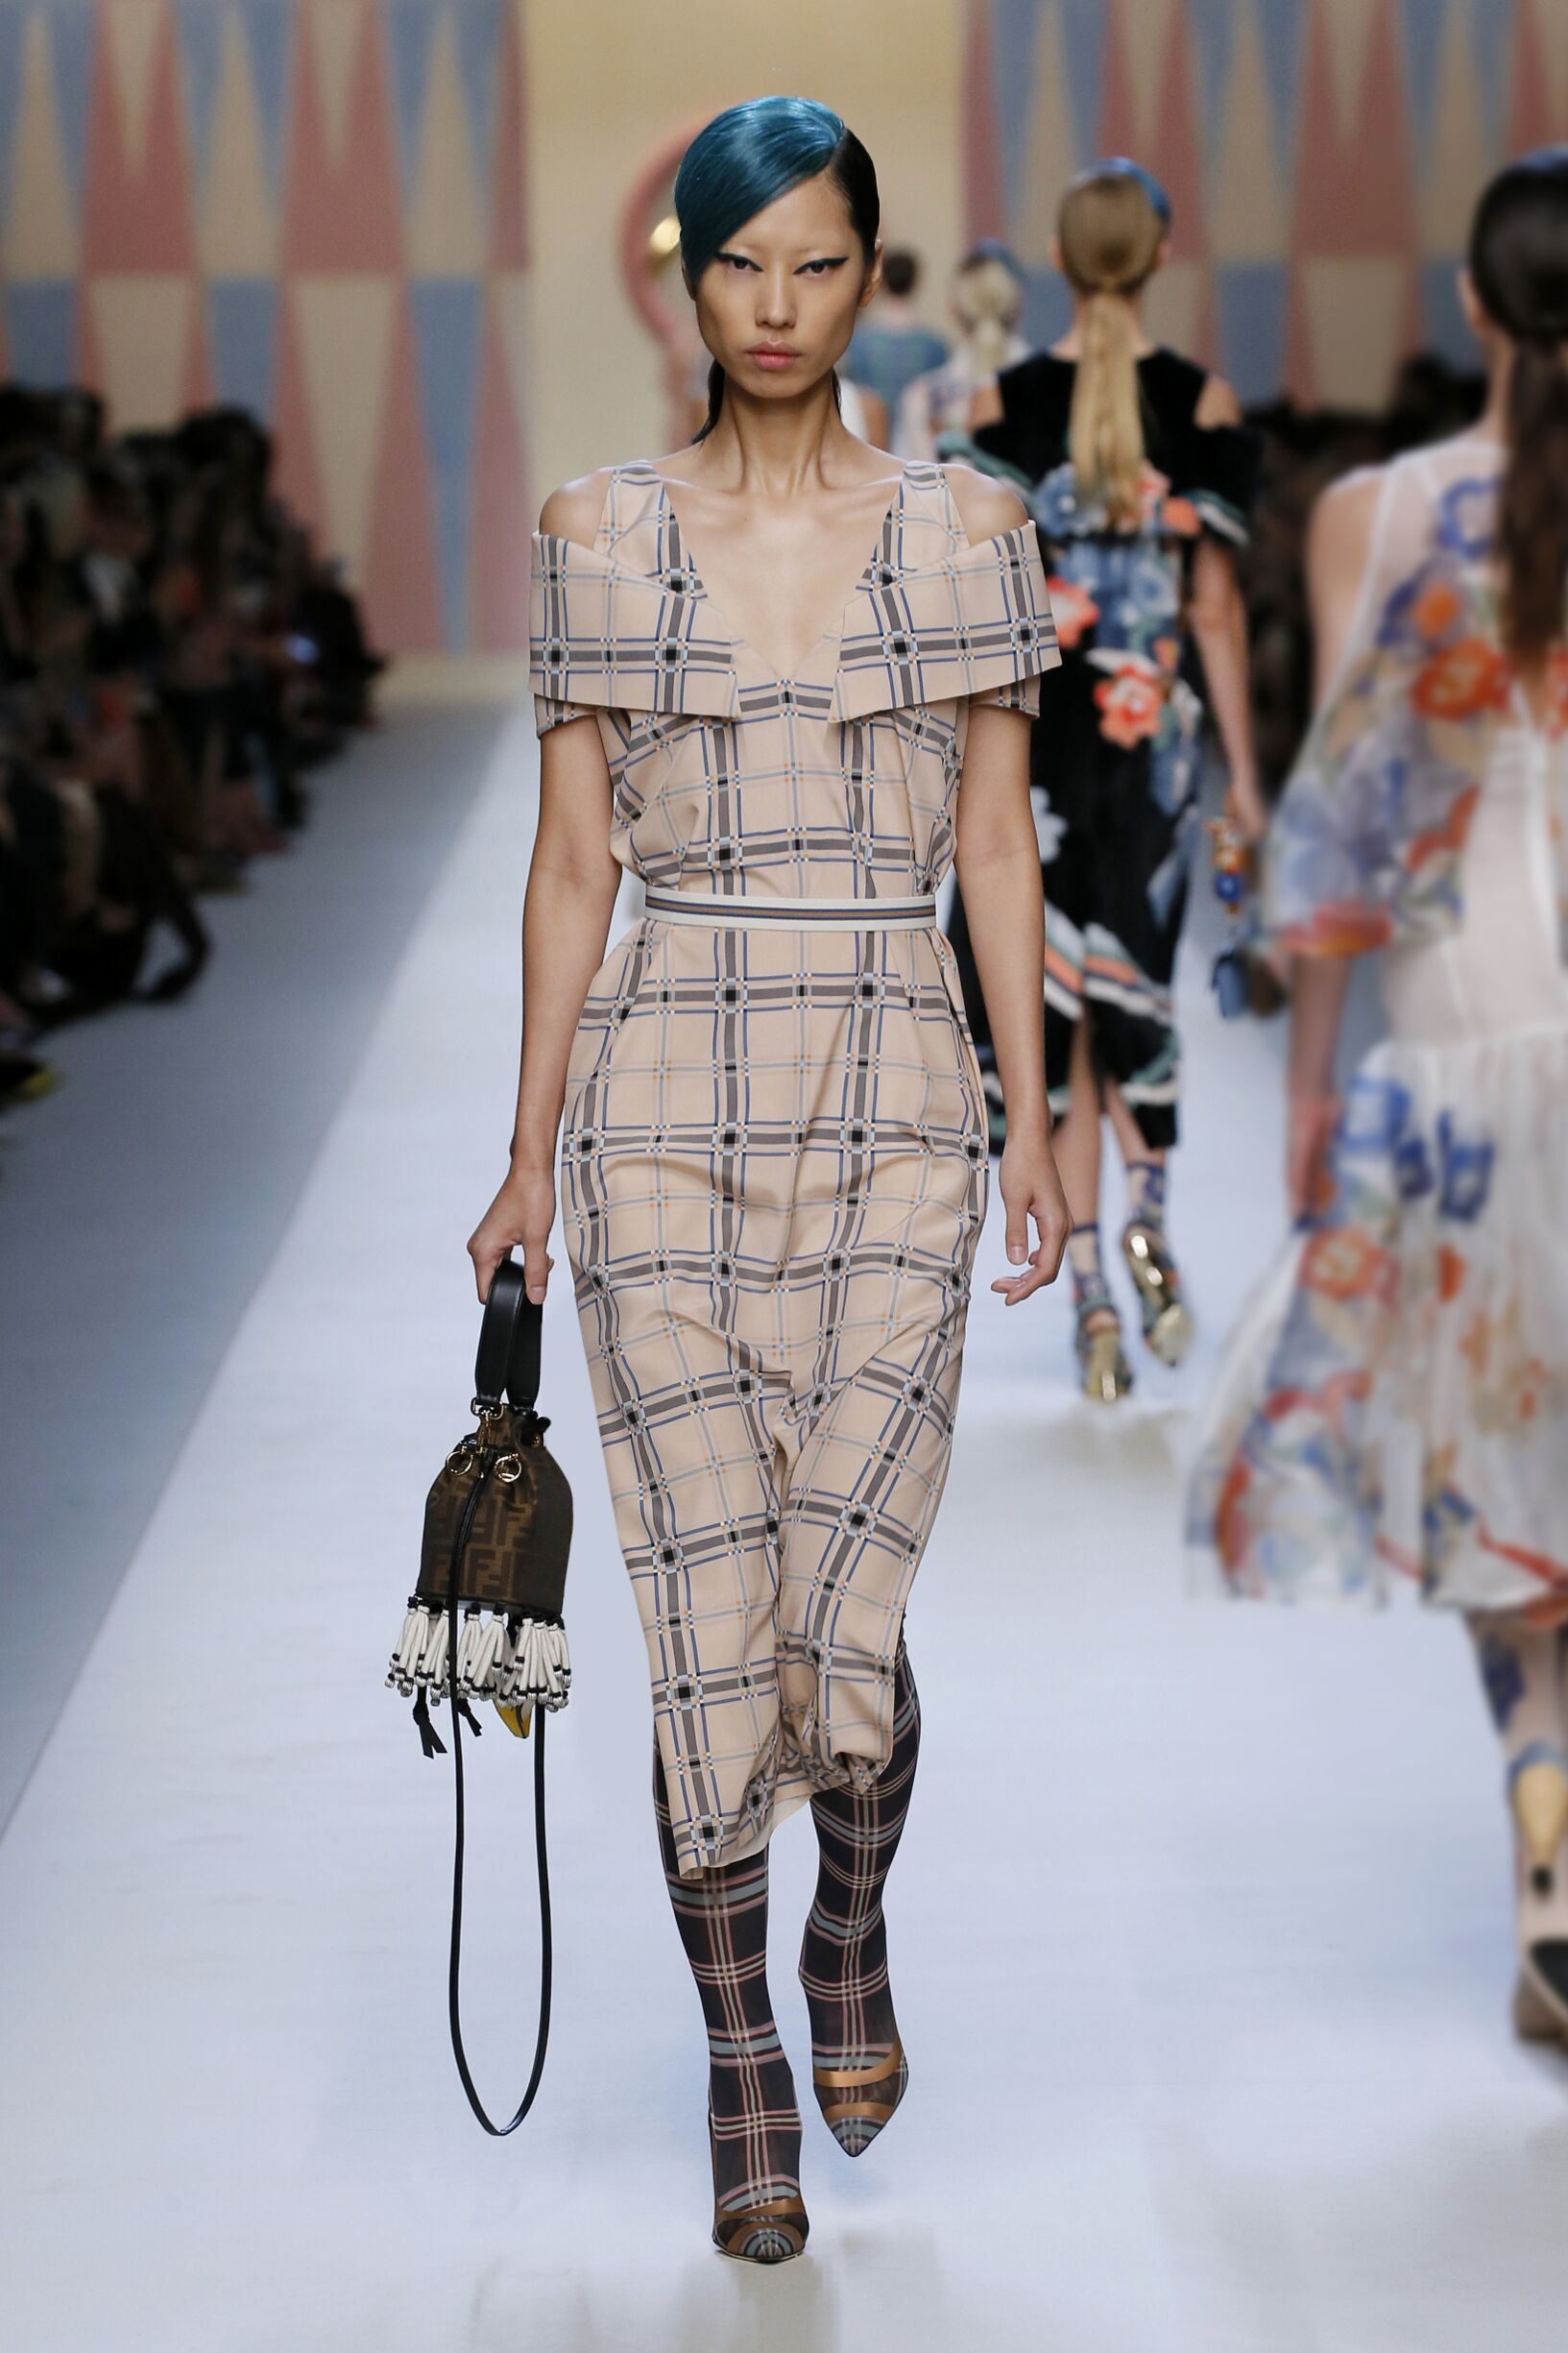 2018 Fendi Summer Catwalk